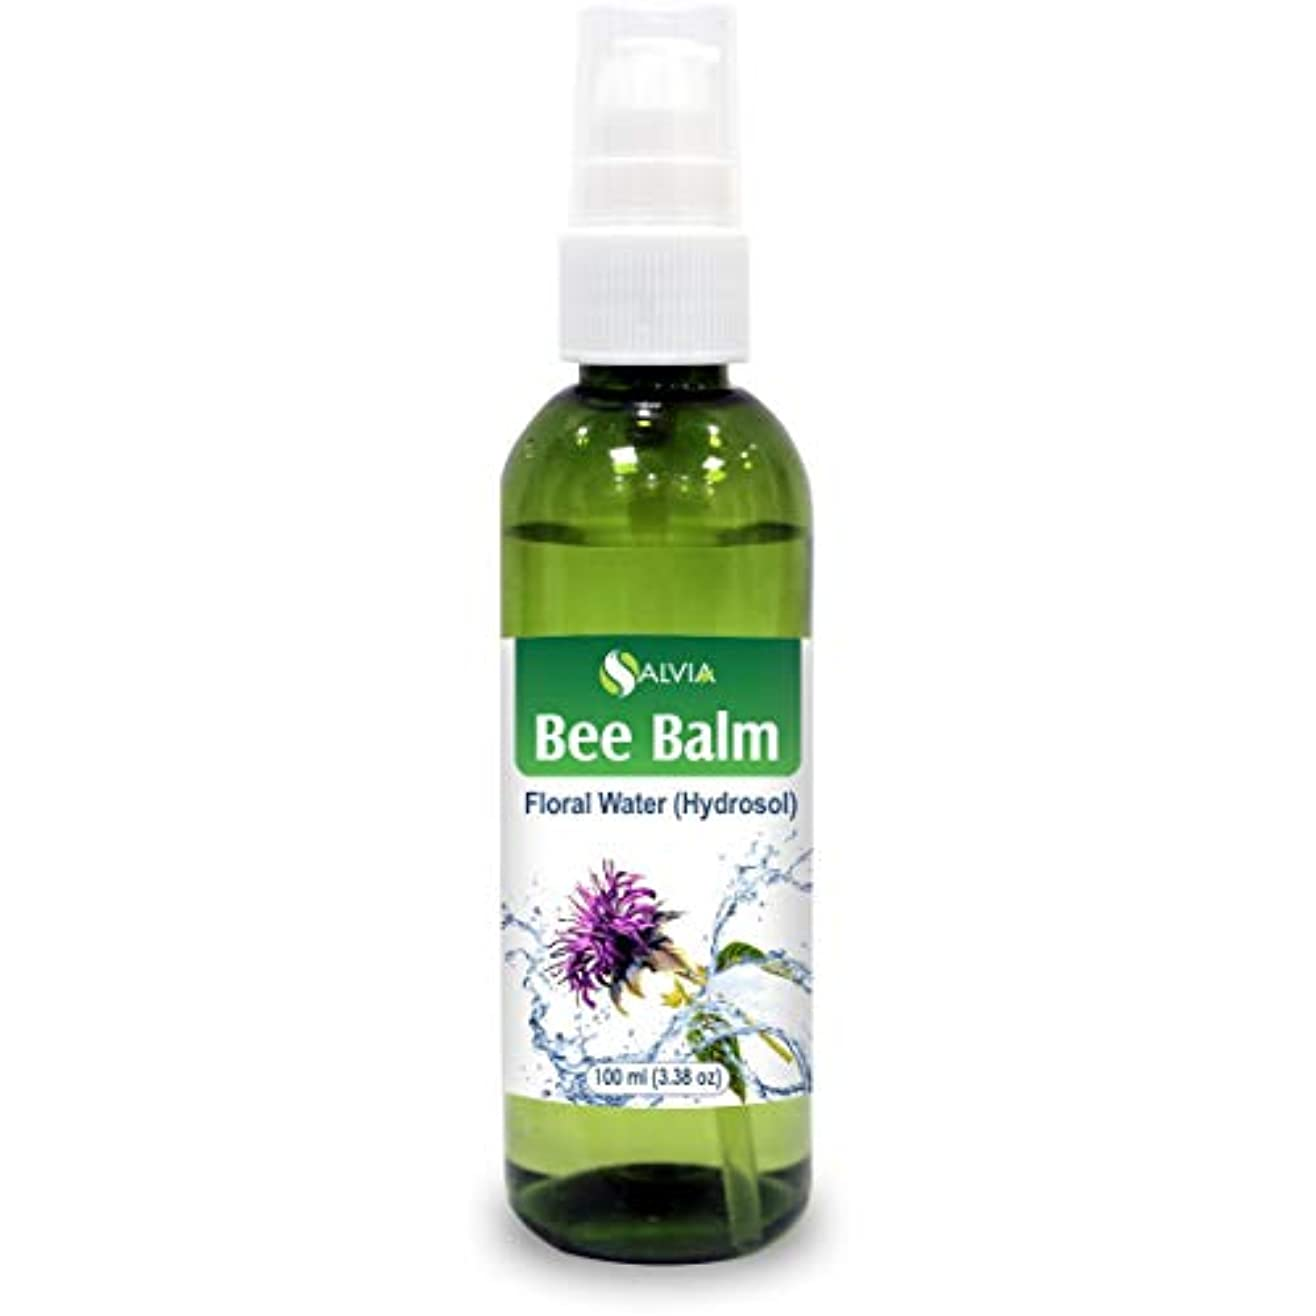 Bee Balm Floral Water 100ml (Hydrosol) 100% Pure And Natural